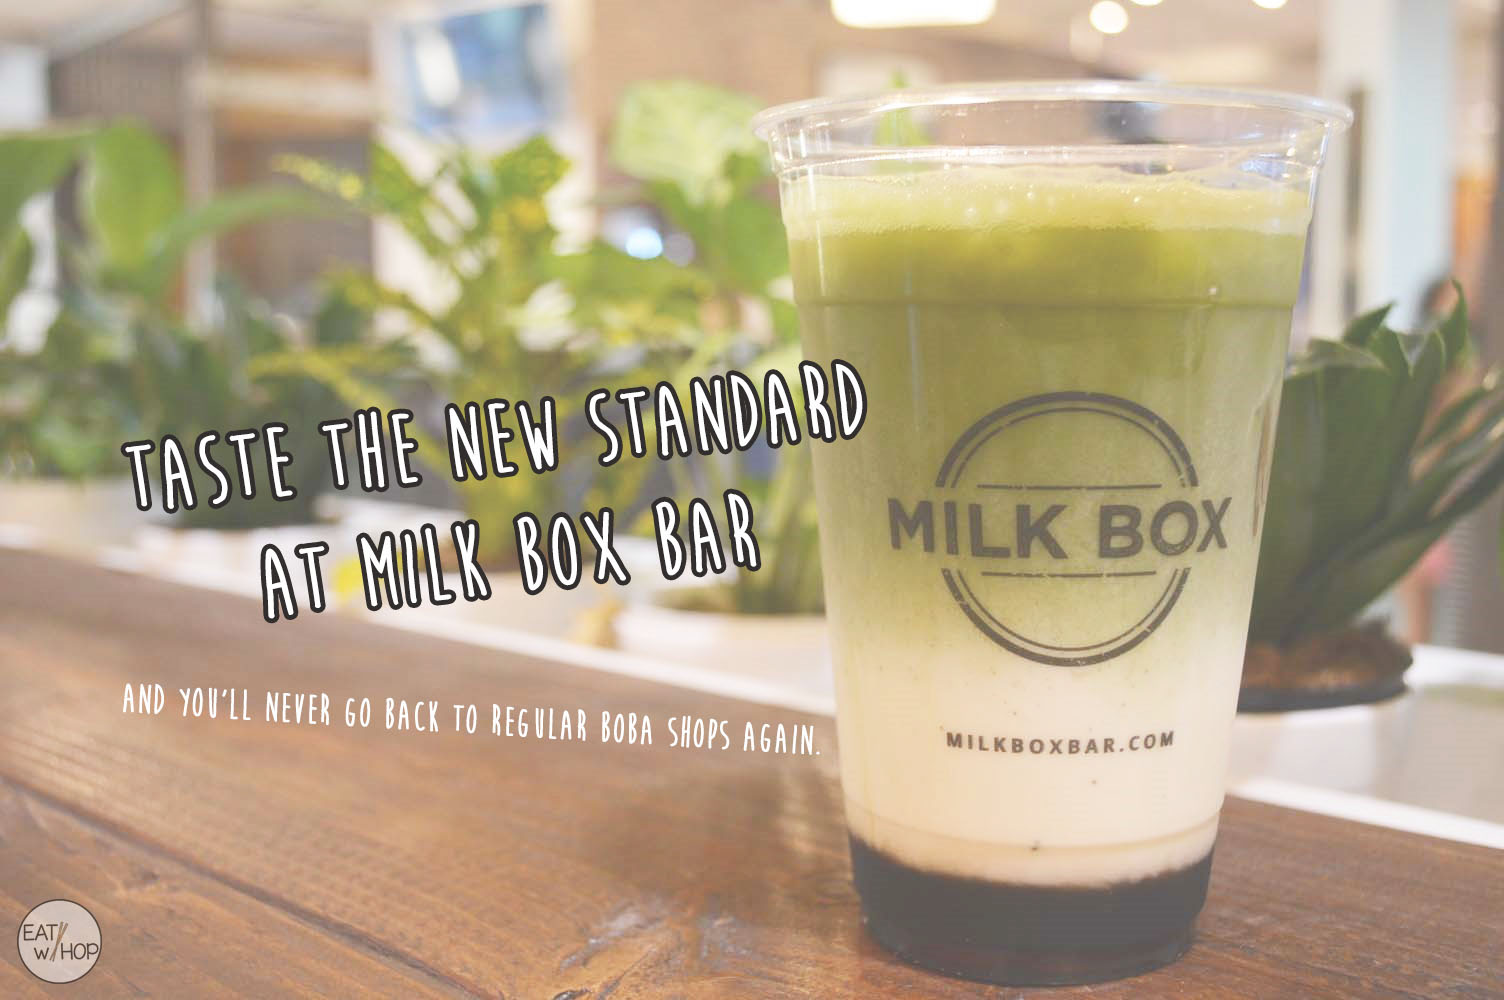 TREAT YO' SELF TO THE NEW STANDARD OF MILK TEAS @ MILK BOX BAR - MISSION VIEJO